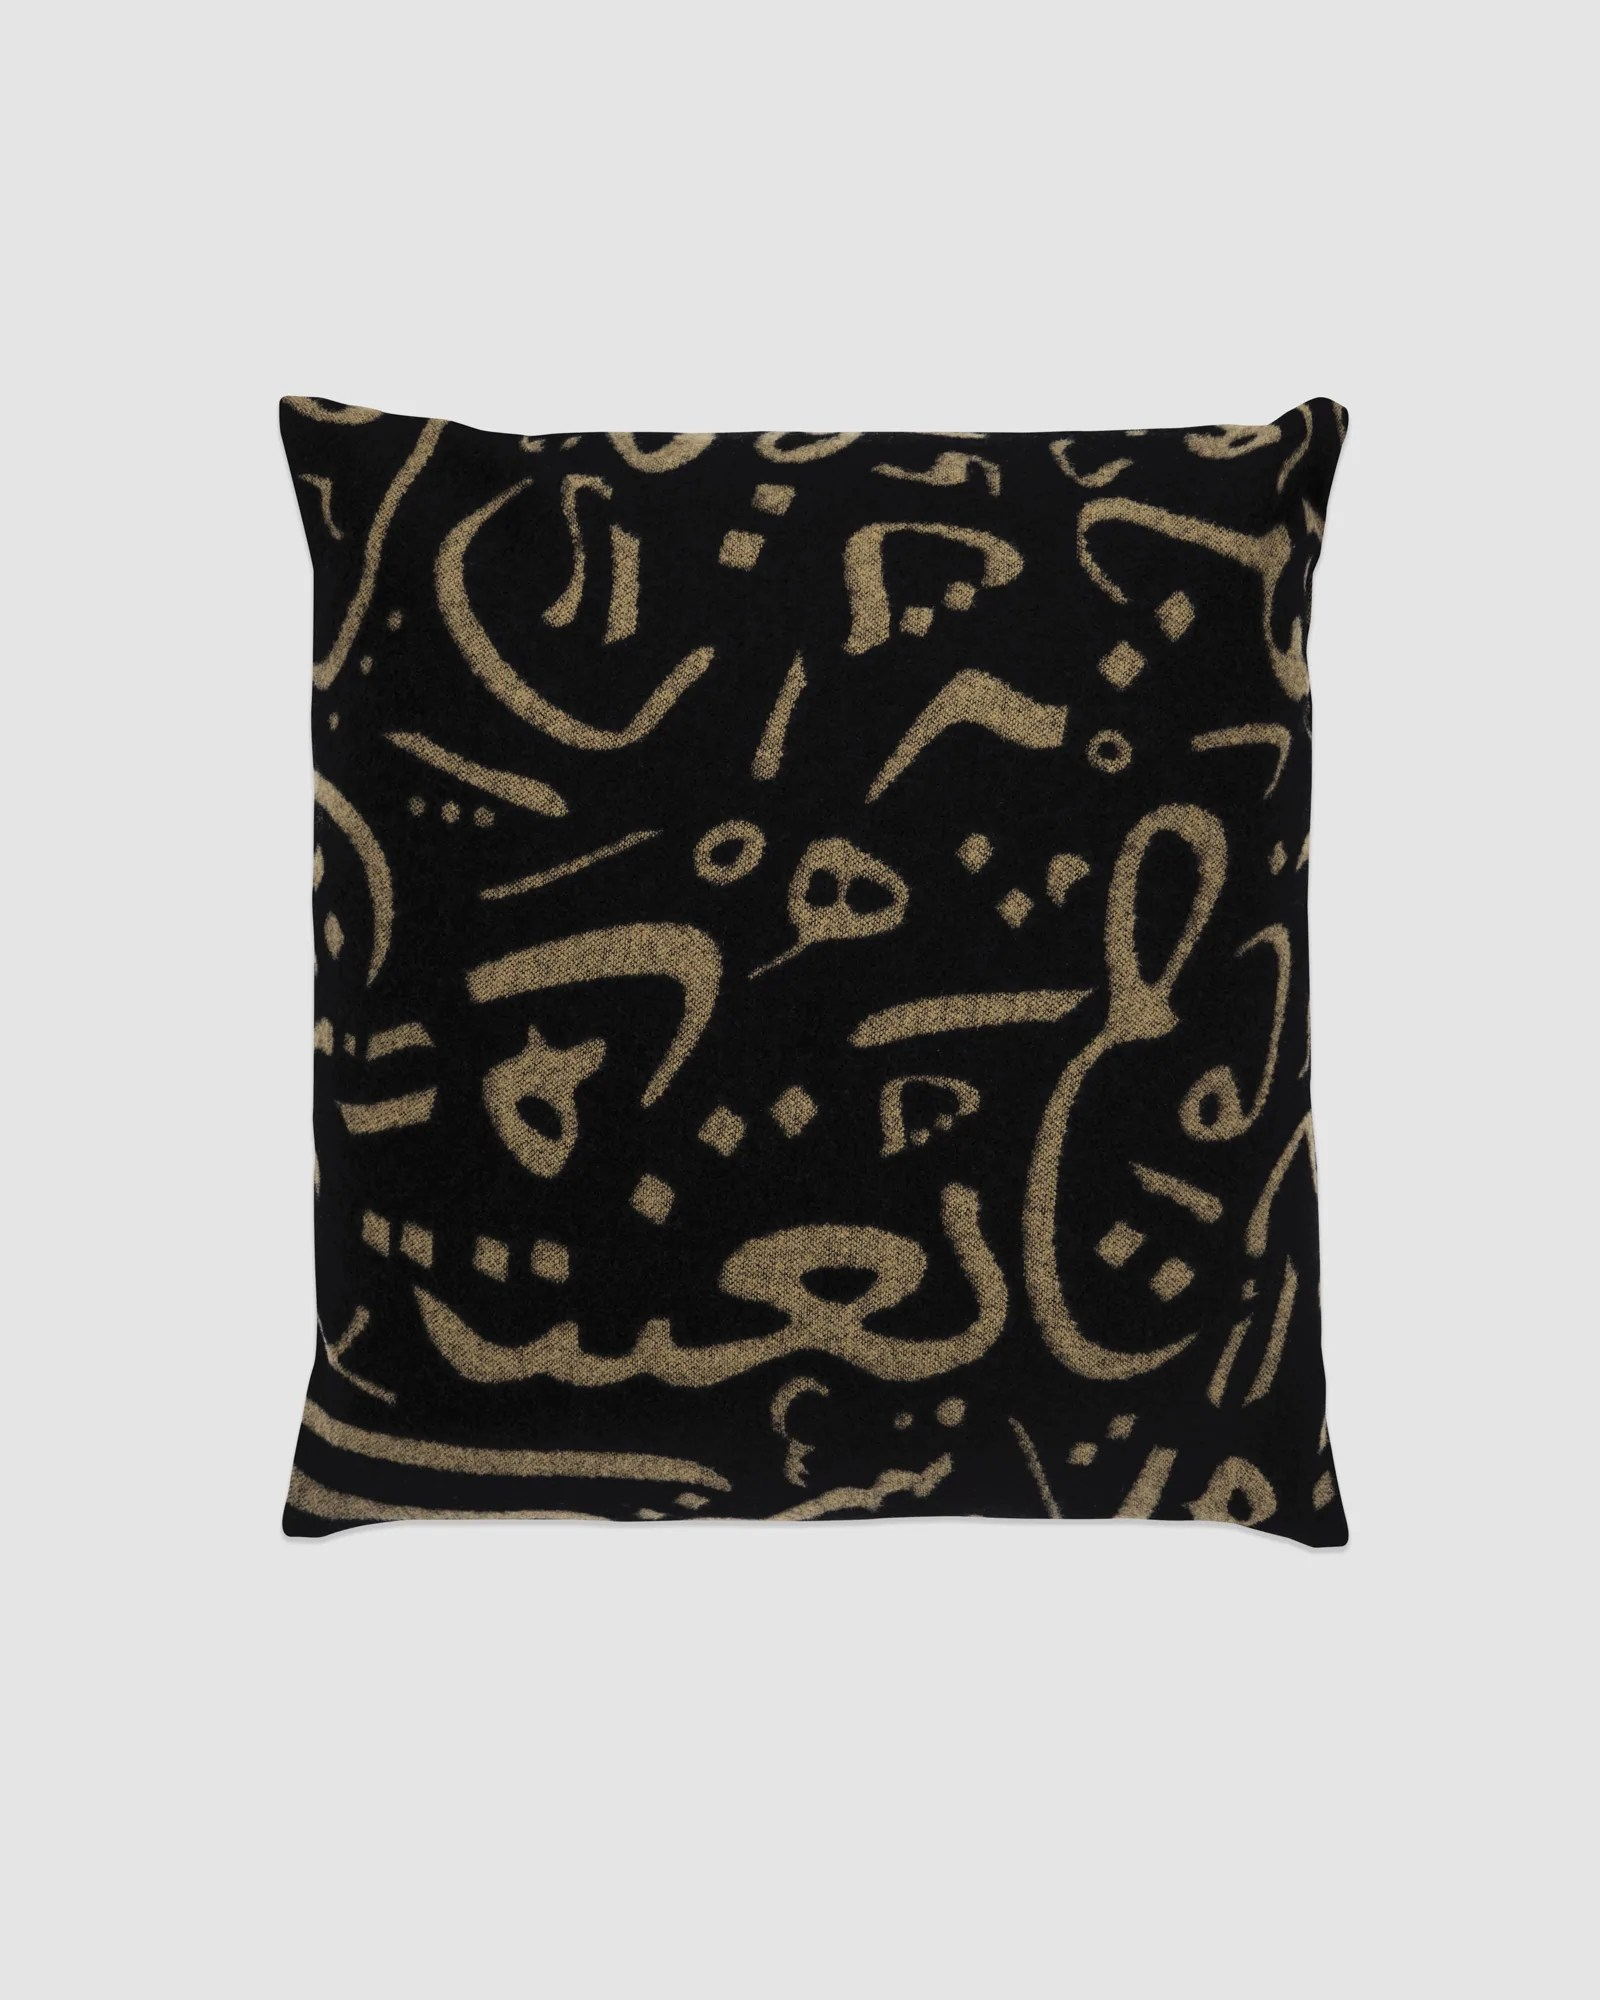 Calligraphy Online Ovo X Woolrich Pillow